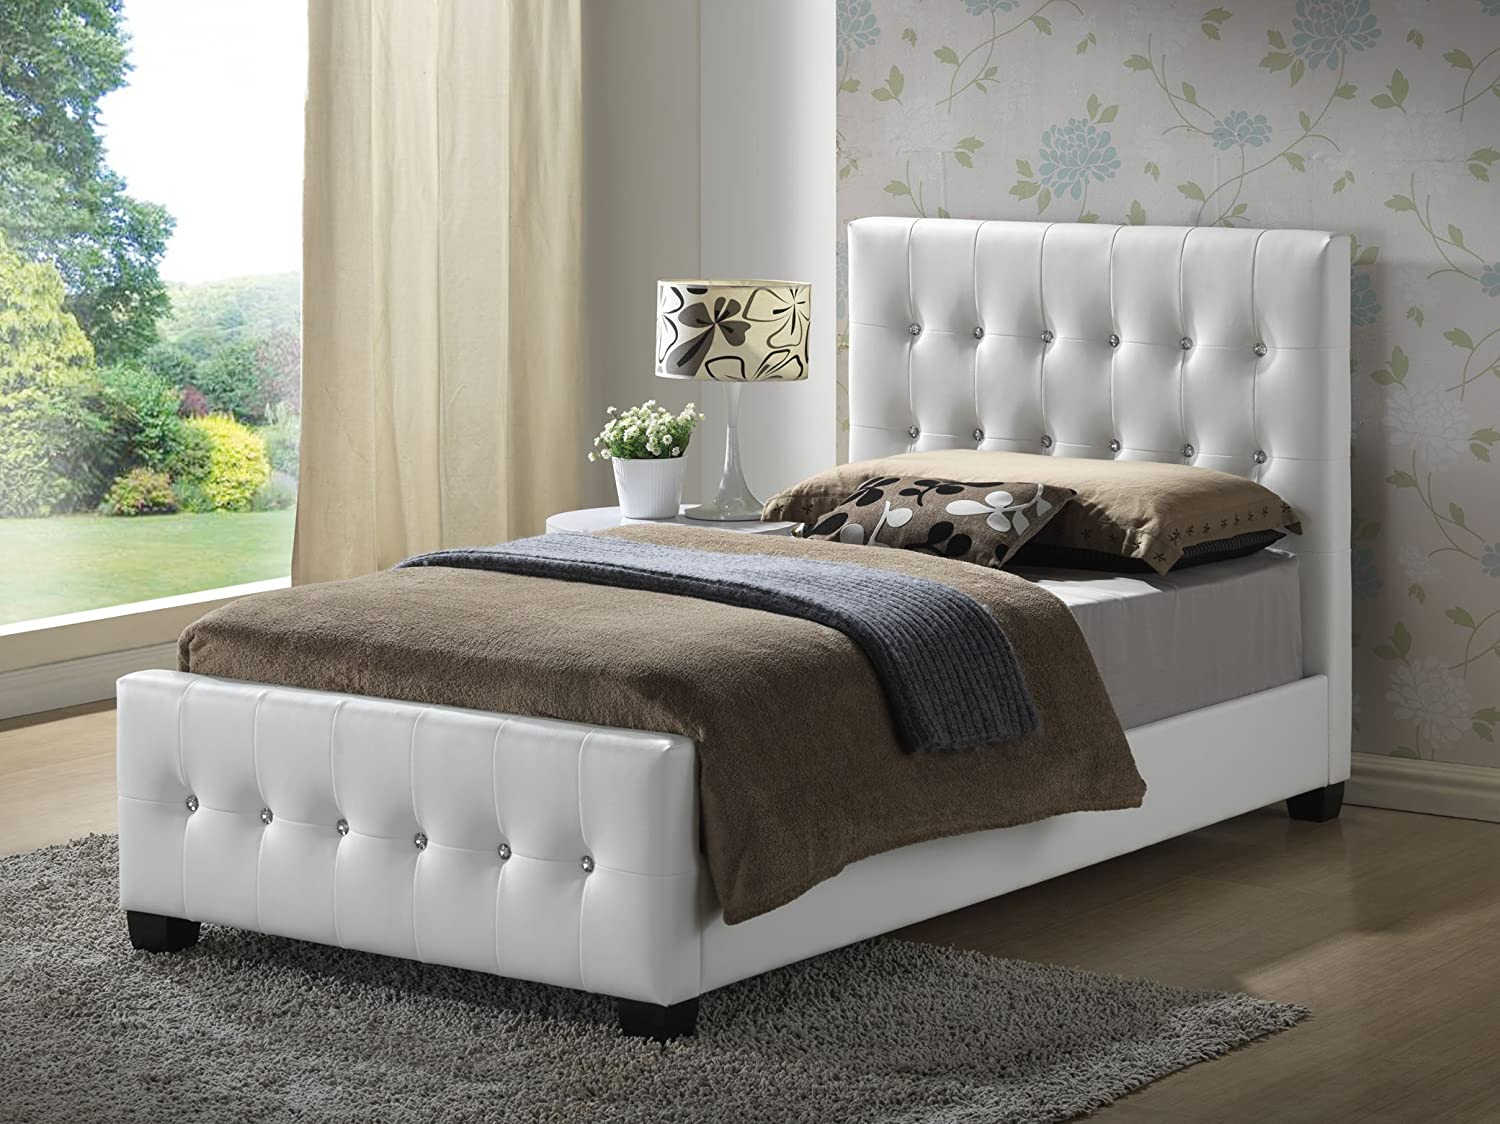 amazoncom white  twin size  modern headboard tufted design leather lookupholstered bed kitchen  dining. amazoncom white  twin size  modern headboard tufted design